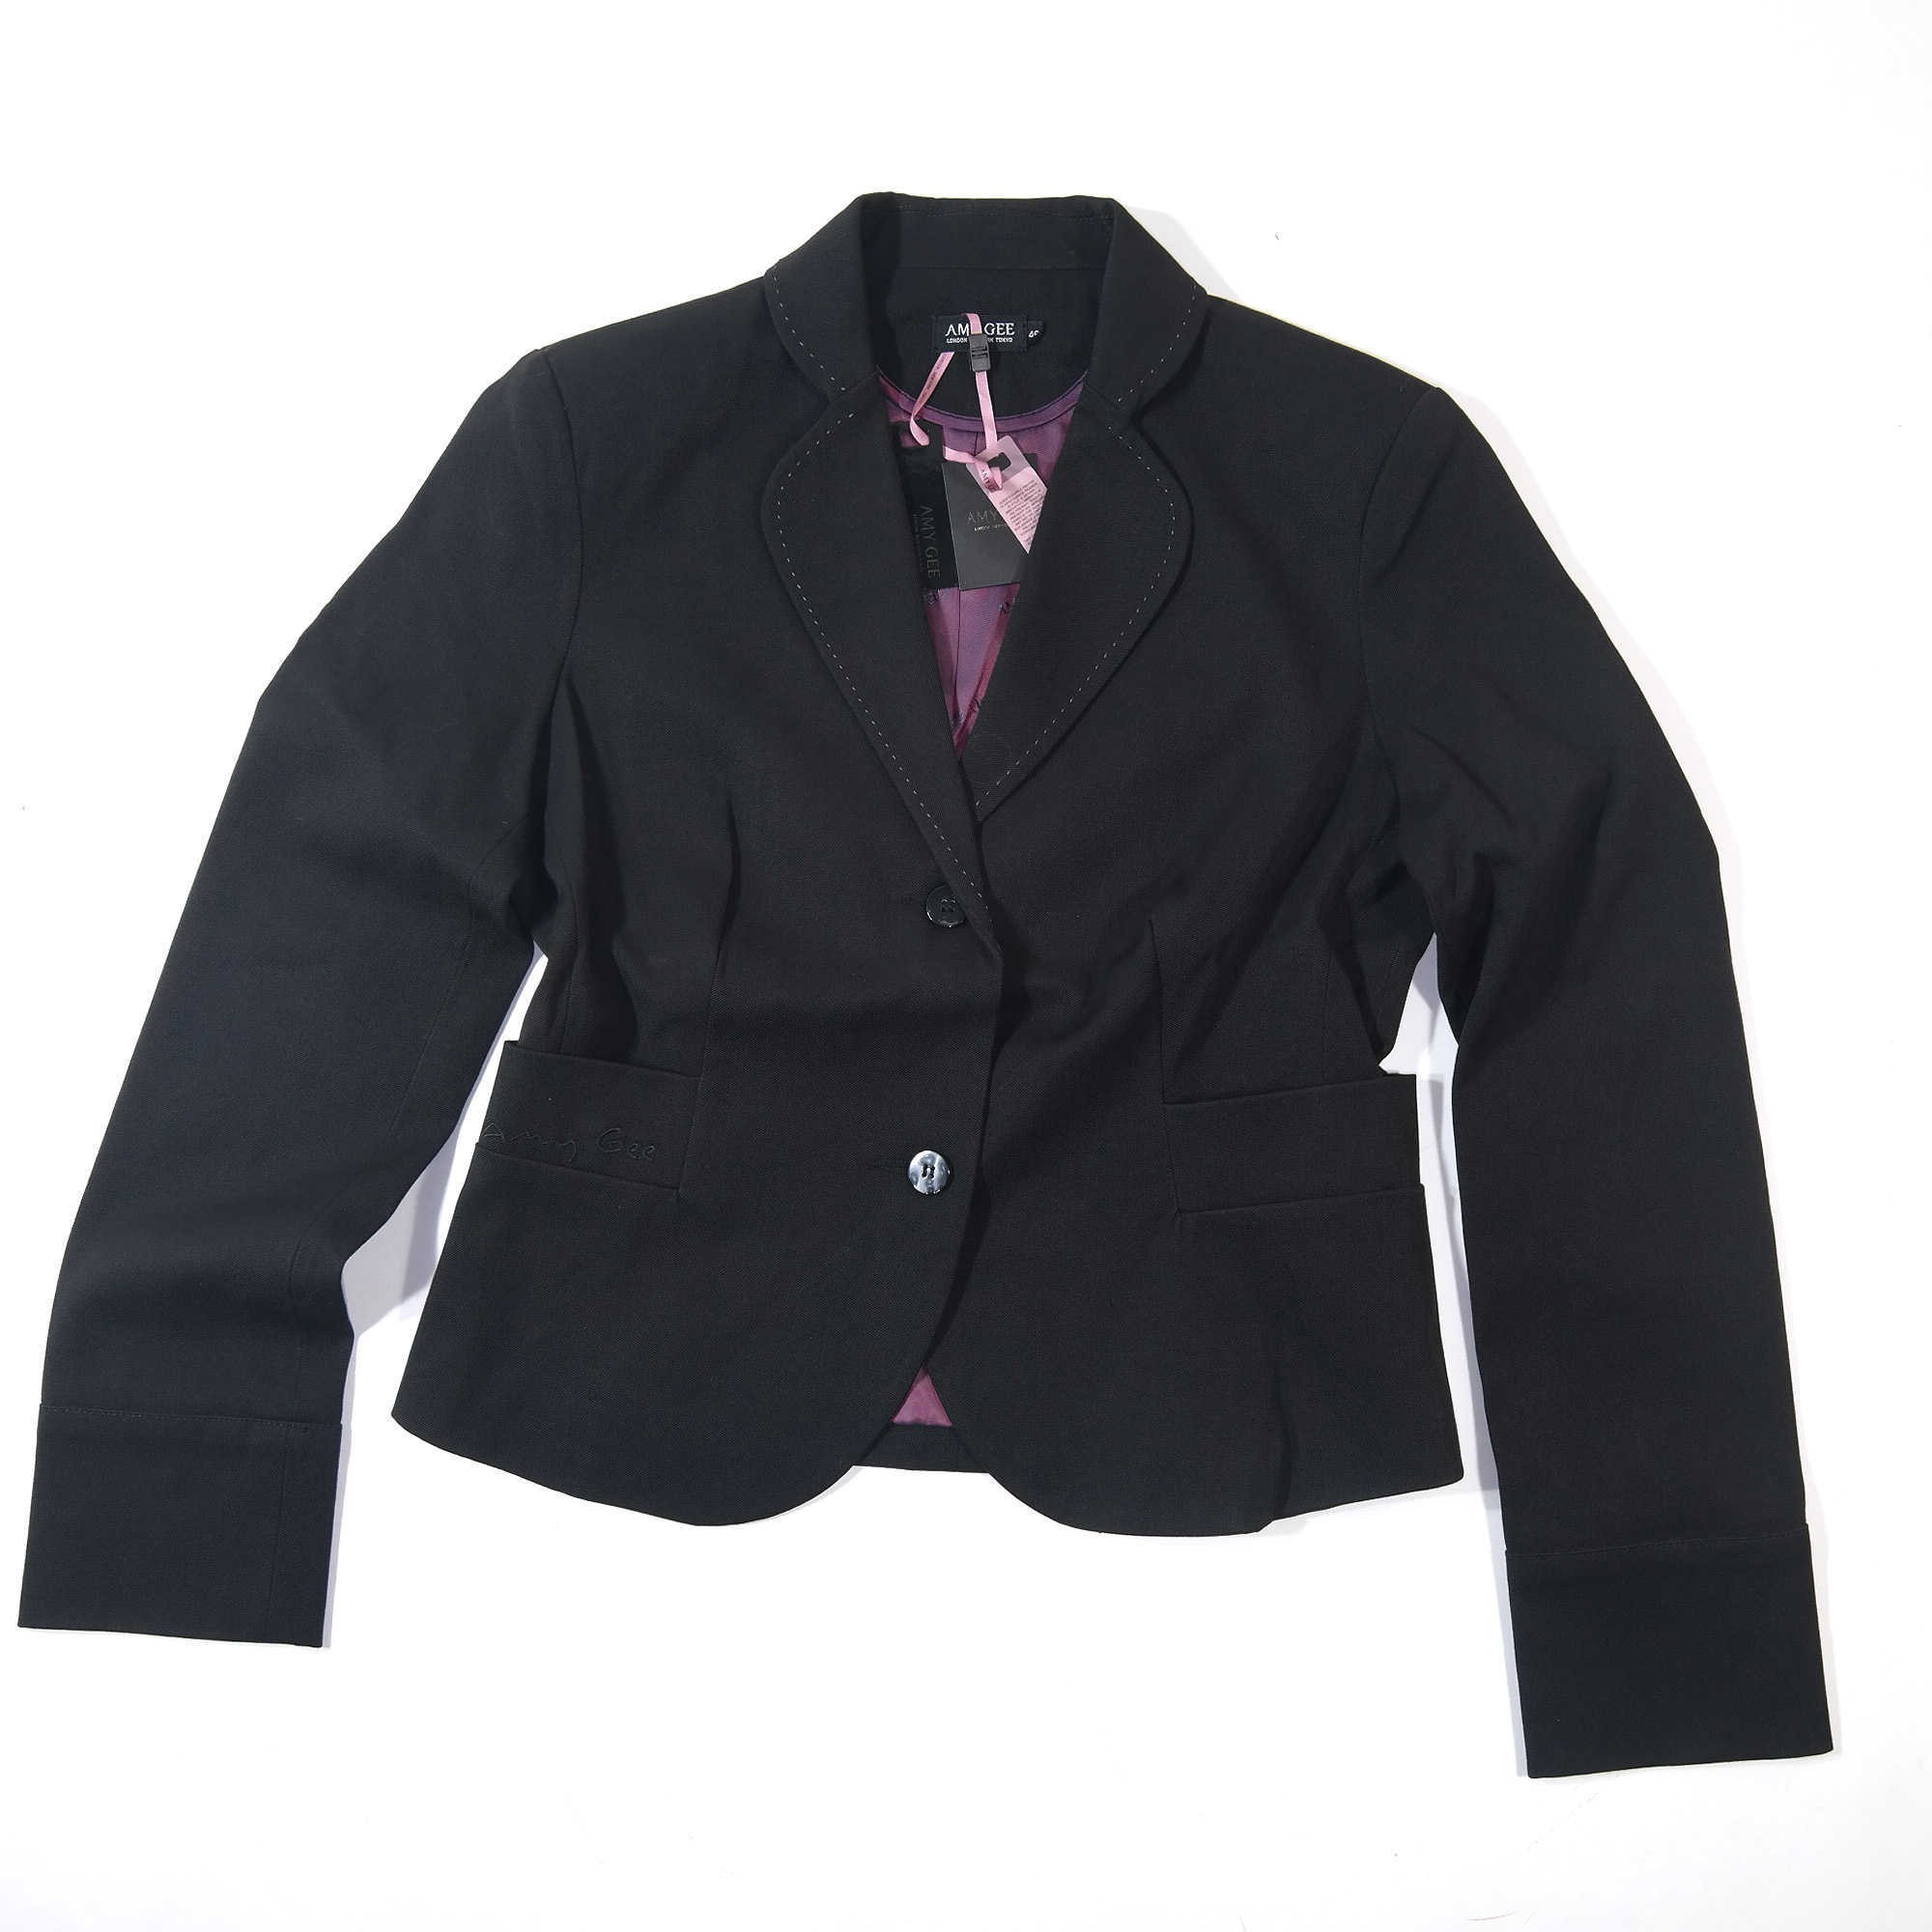 Cappotto Donna AMY GEE D070 Tg 42 44